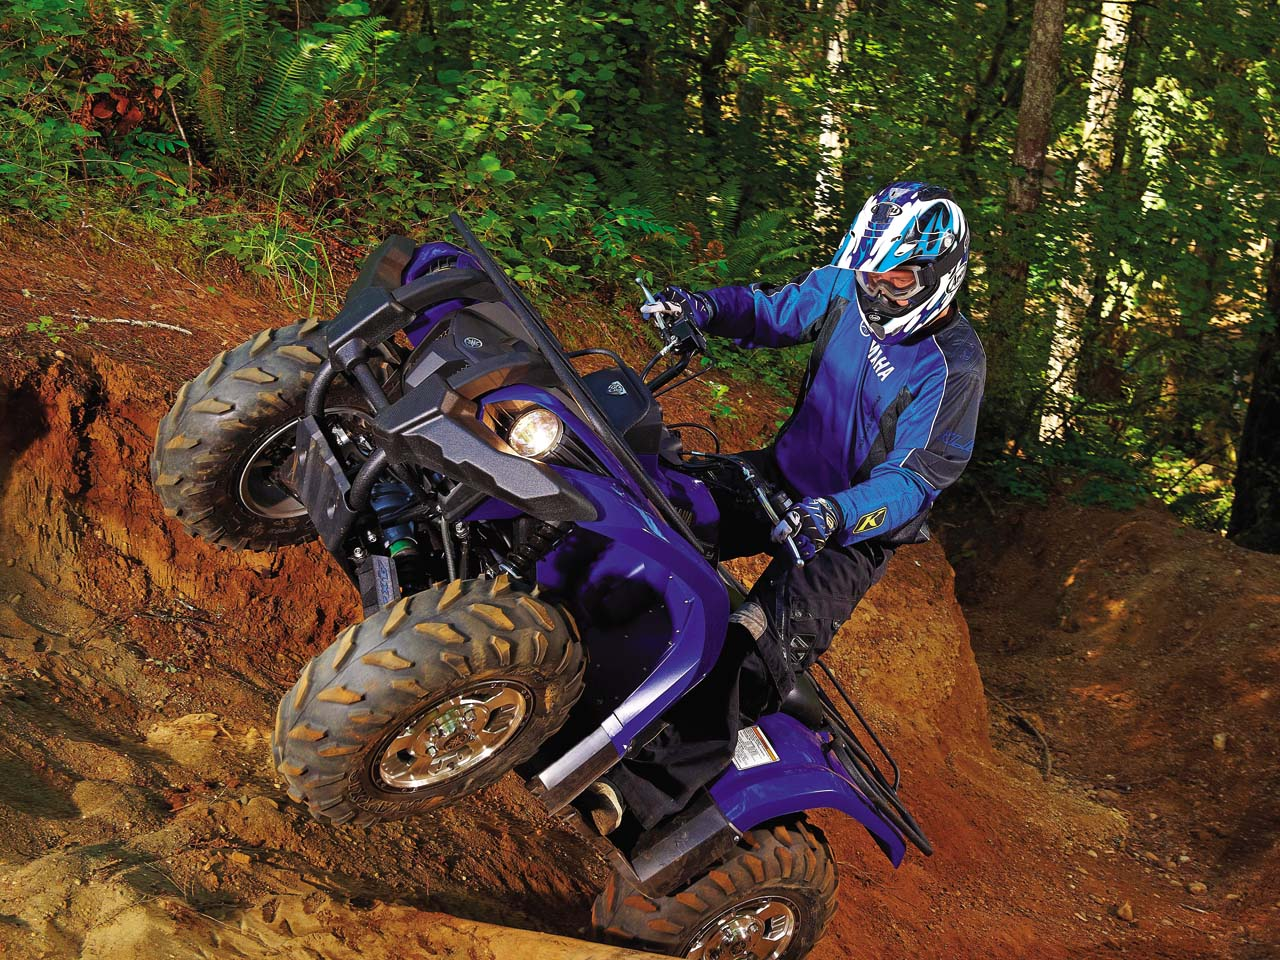 hight resolution of 2011 yamaha grizzly450eps front left blue rididng up